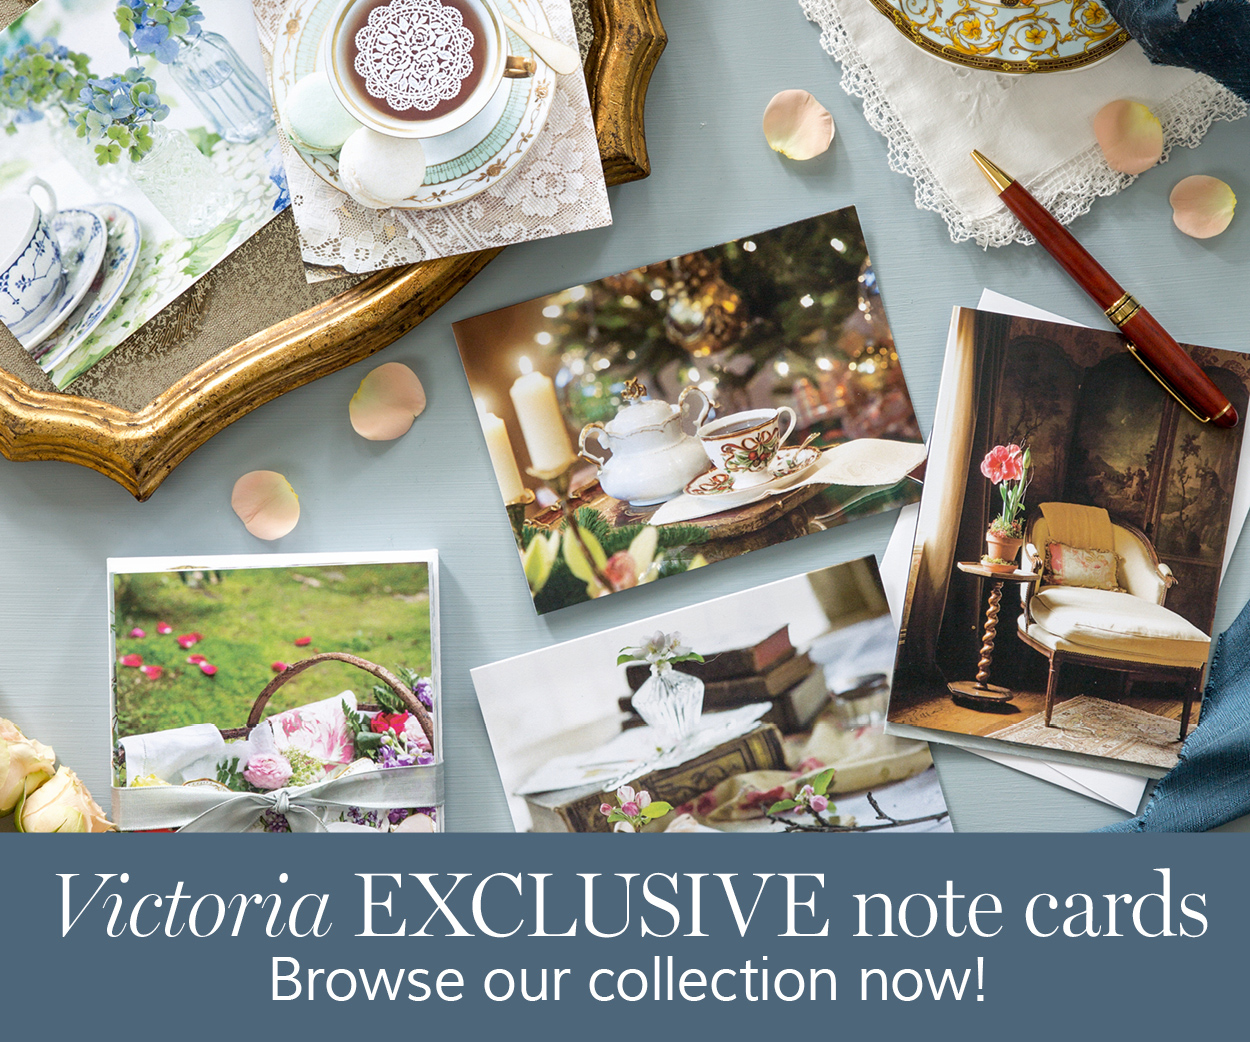 Order the Exclusive Victoria Notecards